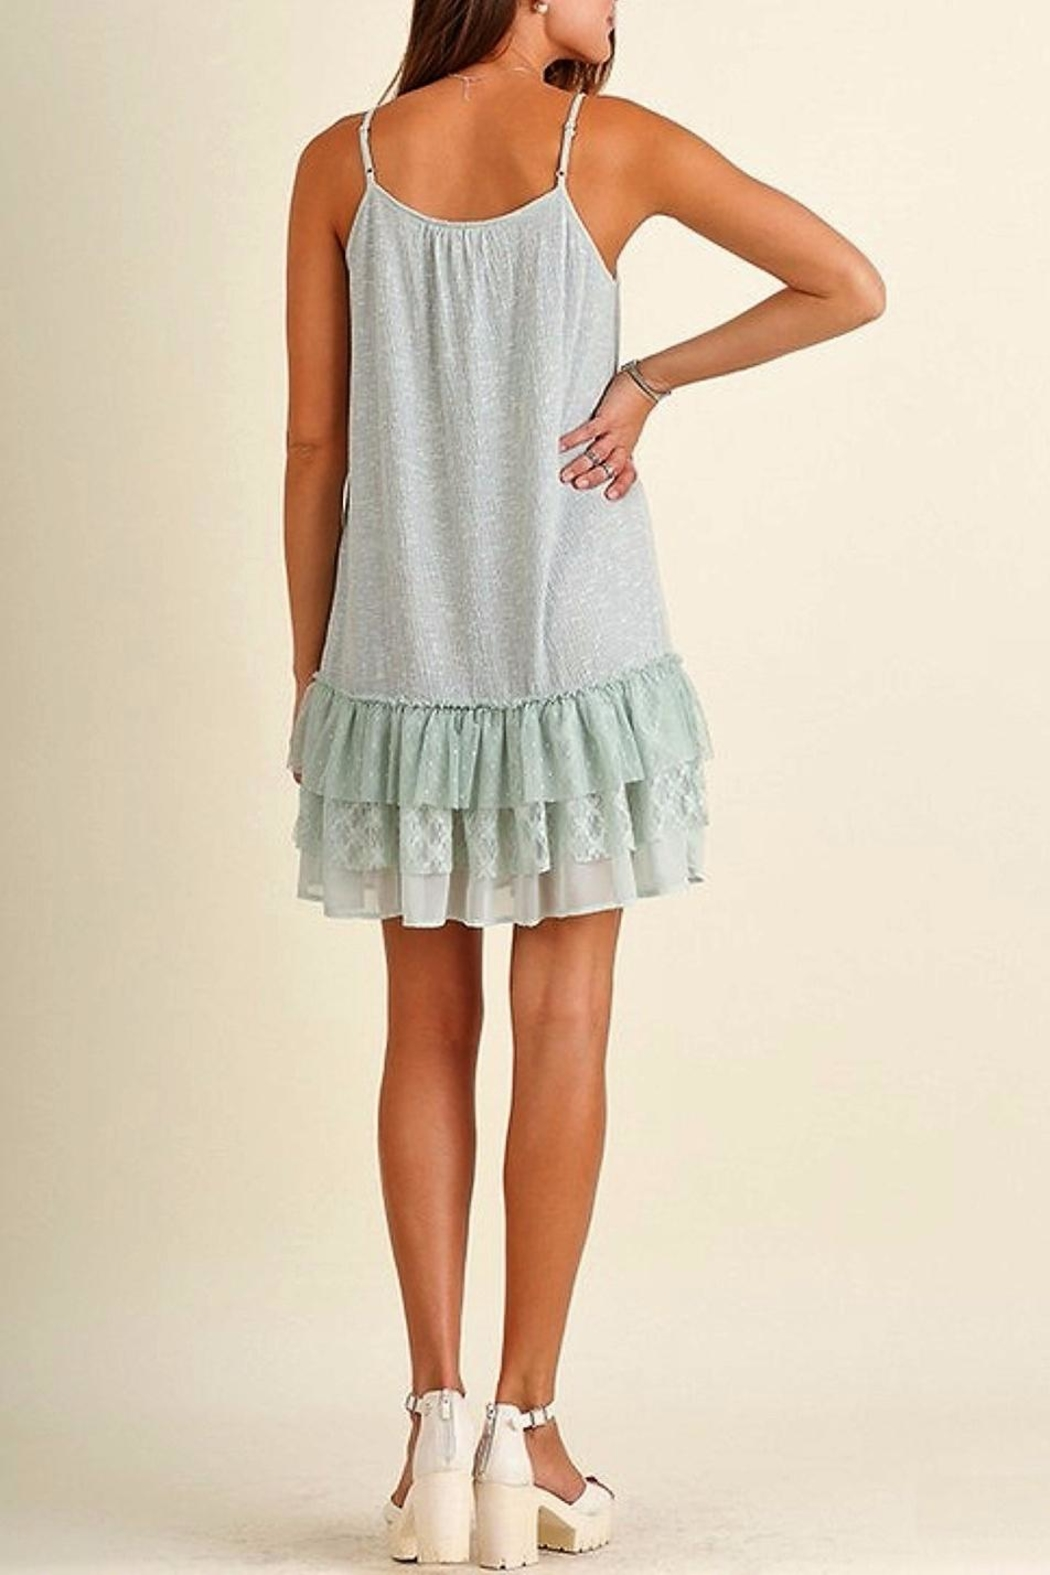 People Outfitter Sun Down Dress - Side Cropped Image